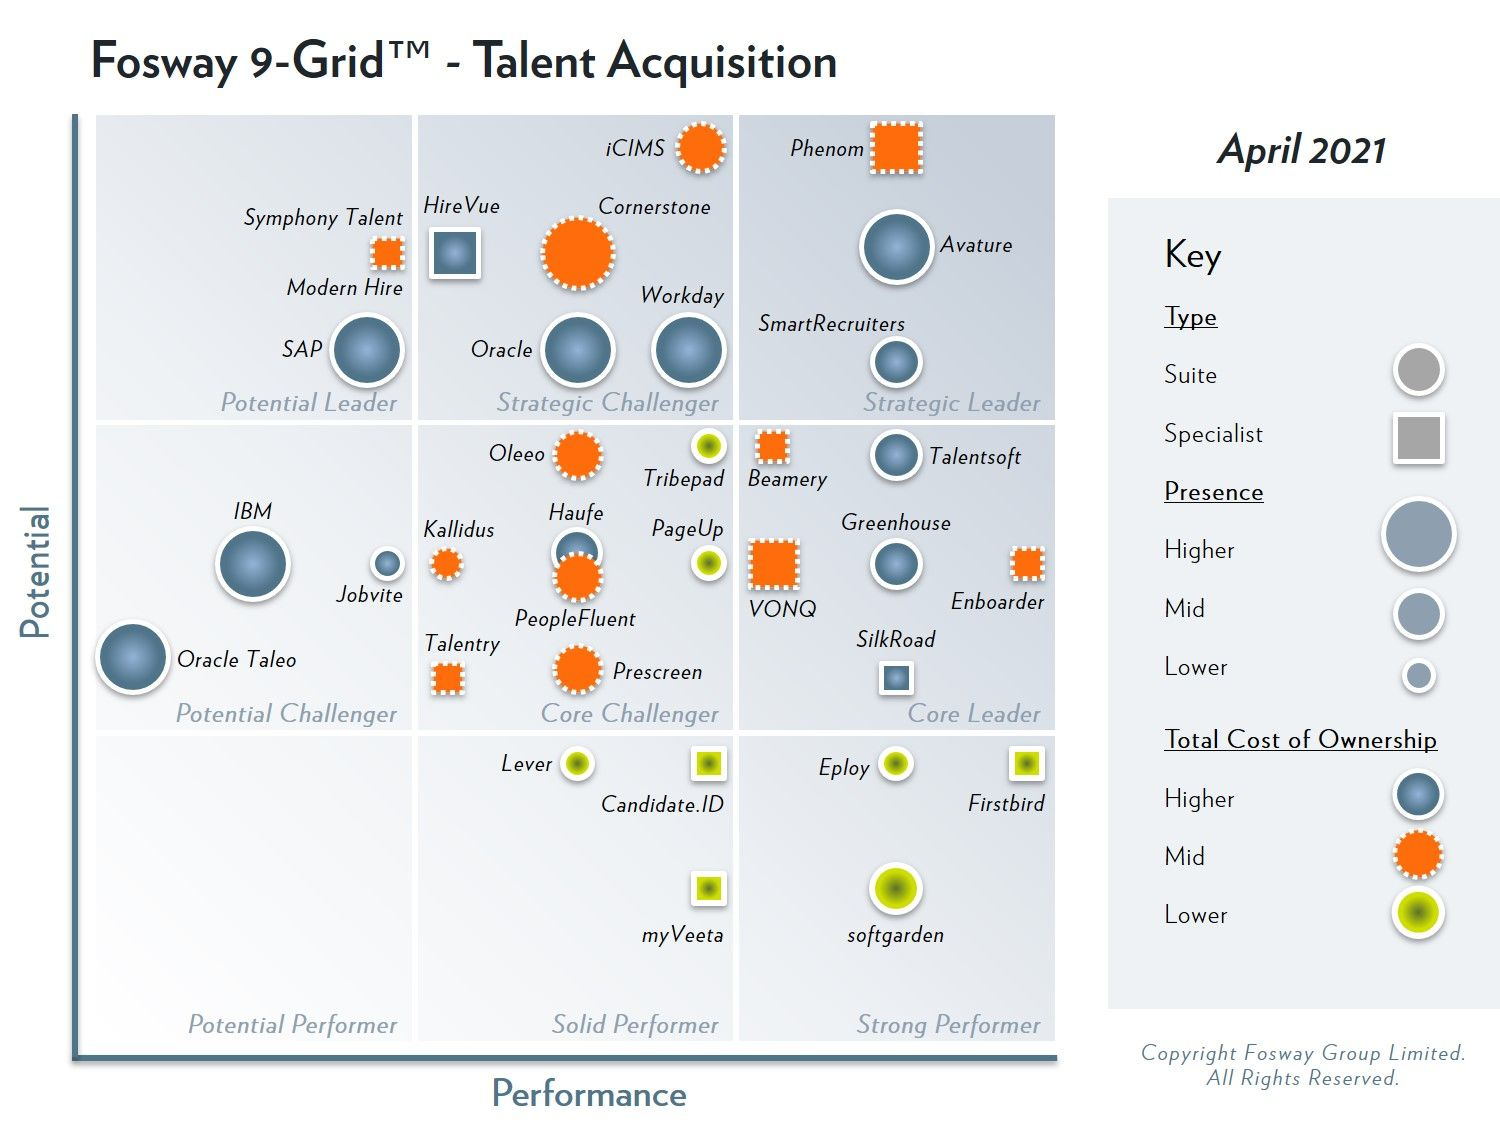 The 2021 Fosway 9-Grid™ for Talent Acquisition